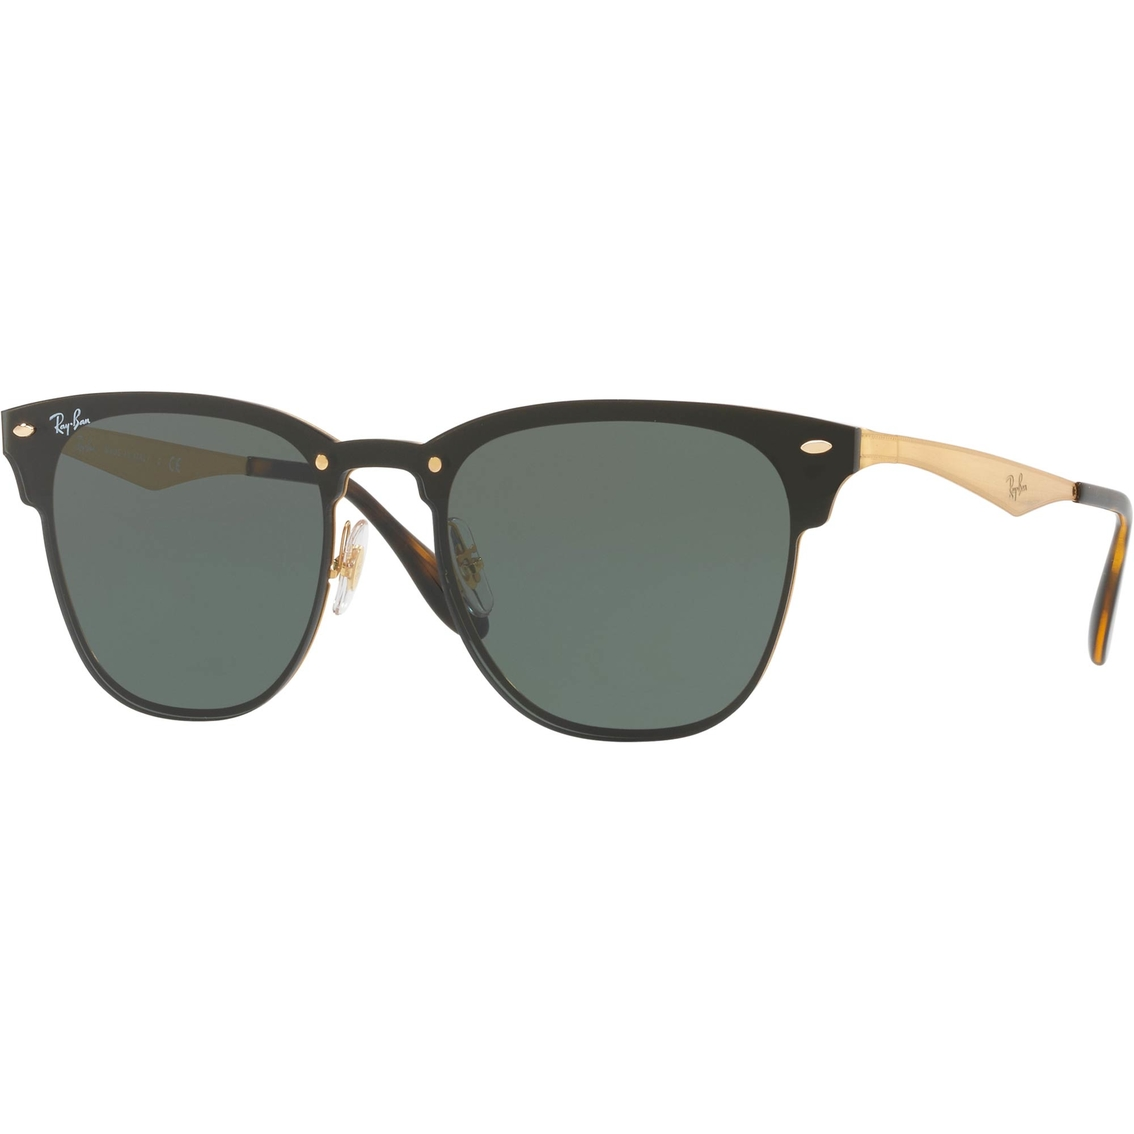 9693fbad9a2 Ray-ban Metal Policarbonate Square Sunglasses 0rb3576n